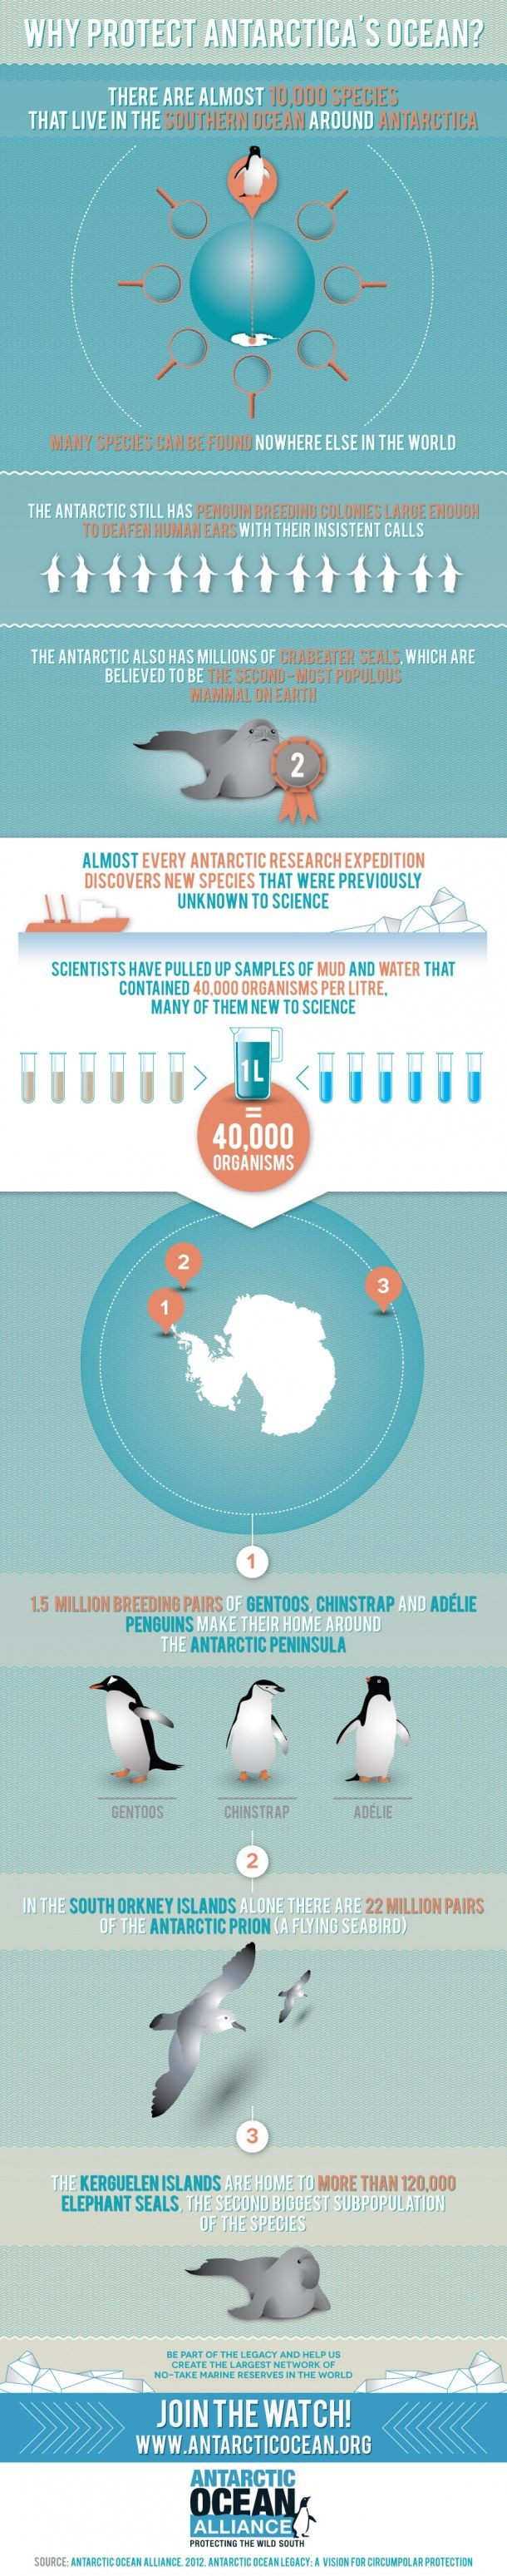 Why Protect Antarctica 's Ocean?#INFOGRAPHIC